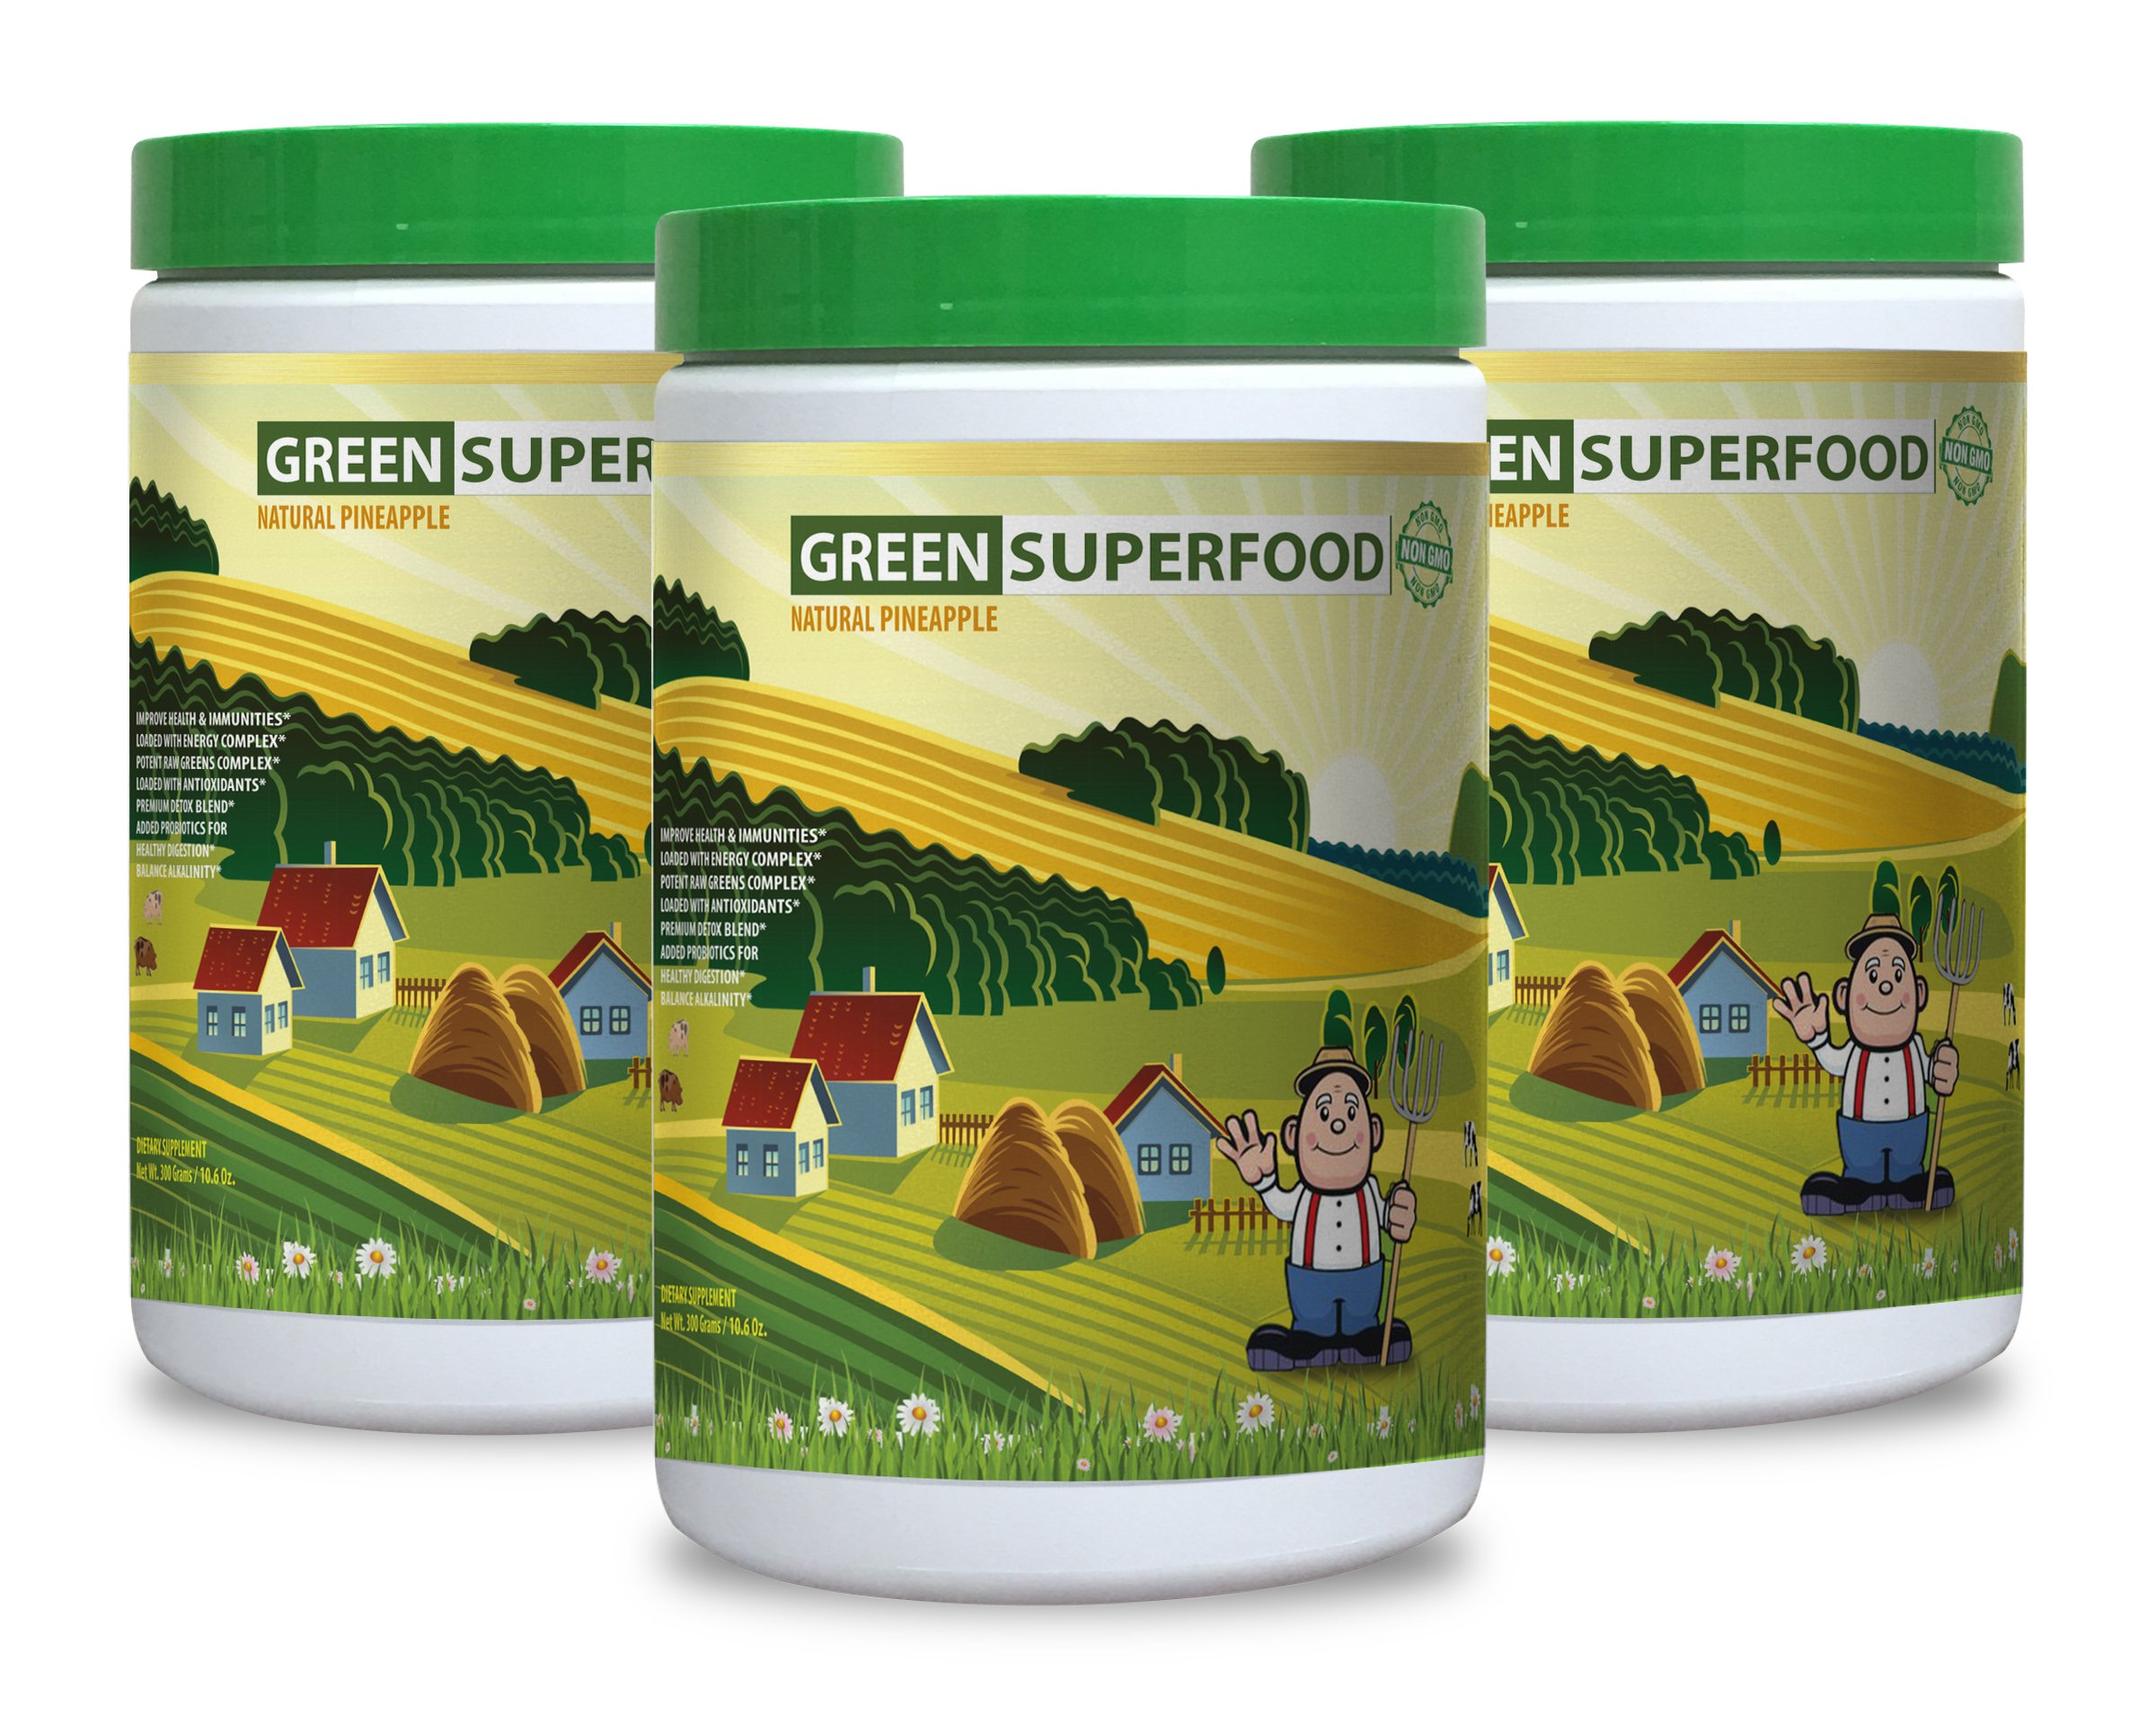 Green tea extract supplement - GREENS SUPERFOOD POWDER WITH NATURAL PINEAPPLE FLAVOR 300G - regulate digestive system (3 Bottles)